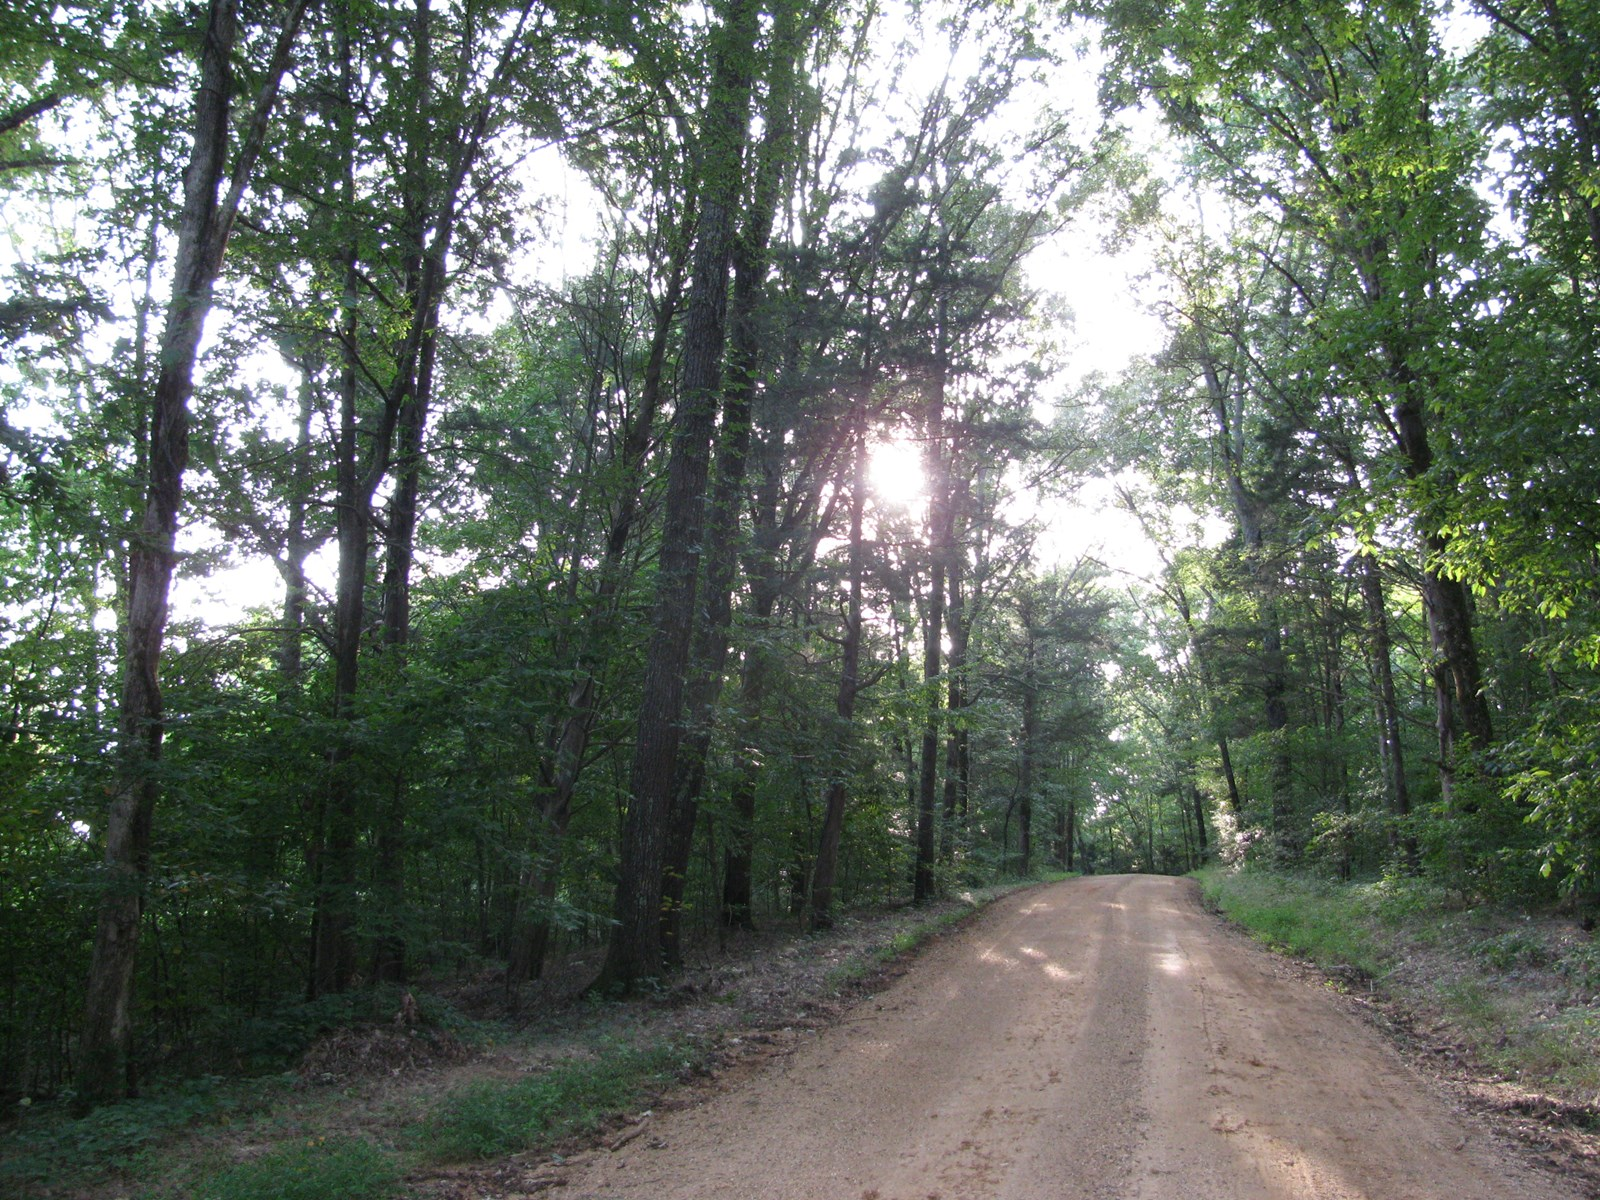 LAND FOR SALE IN TN, BUILDING SITES, CREEK - 21 AC